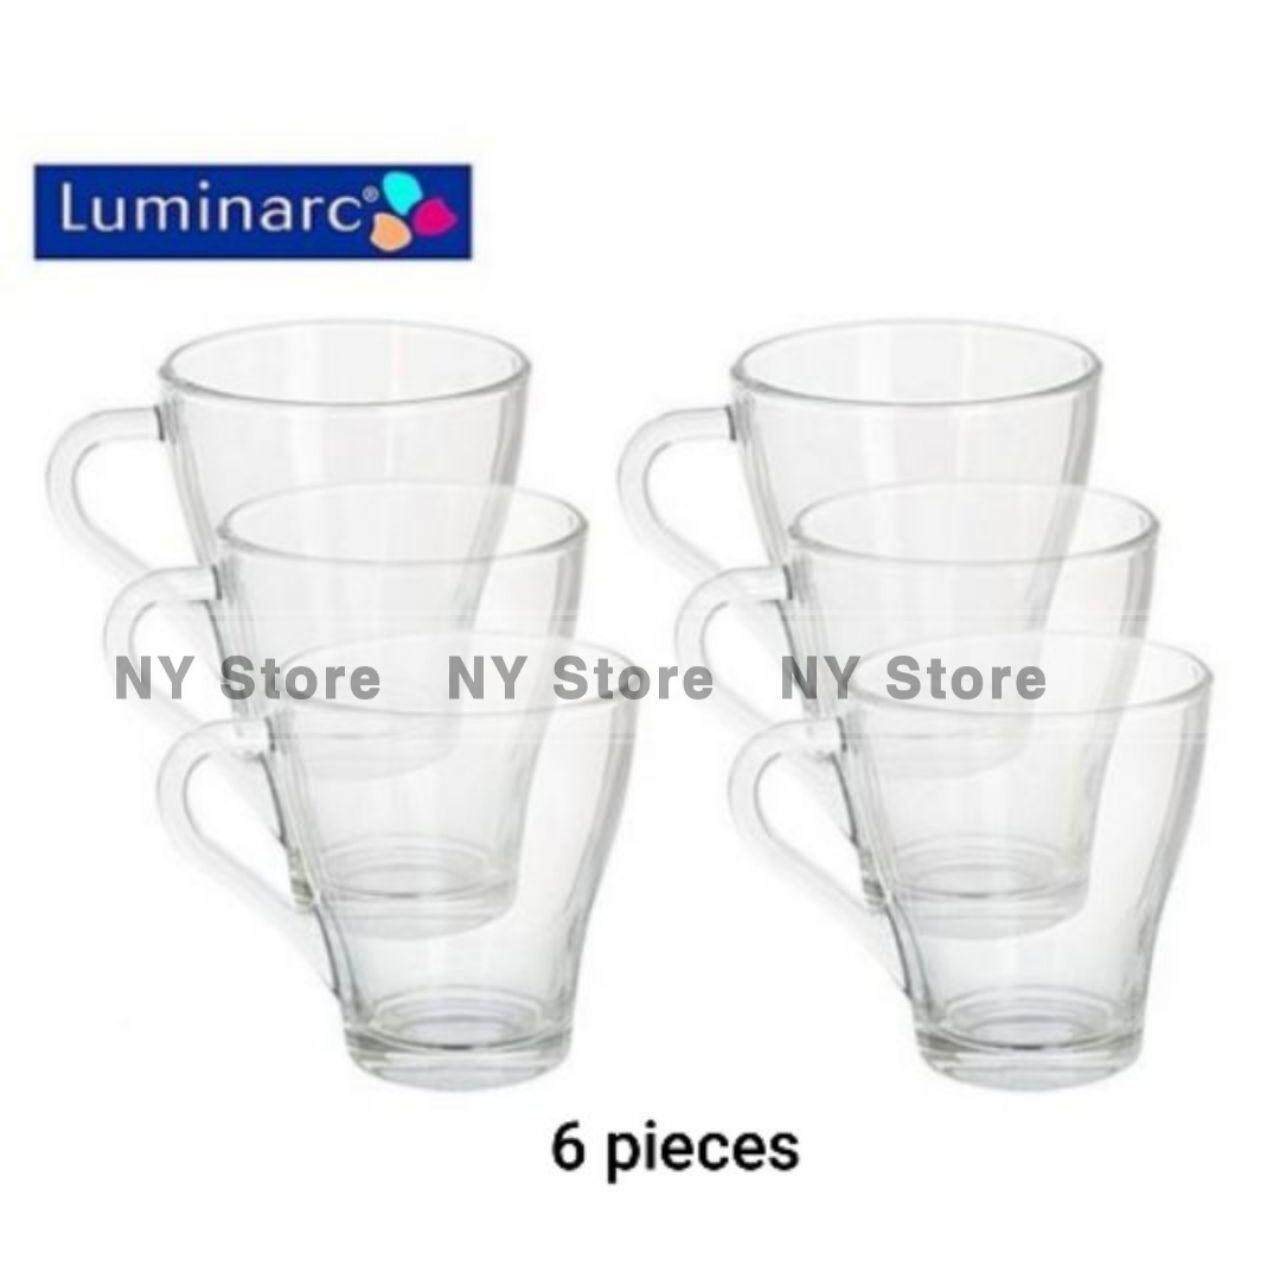 Luminarc Glassware For The Best Price In Malaysia